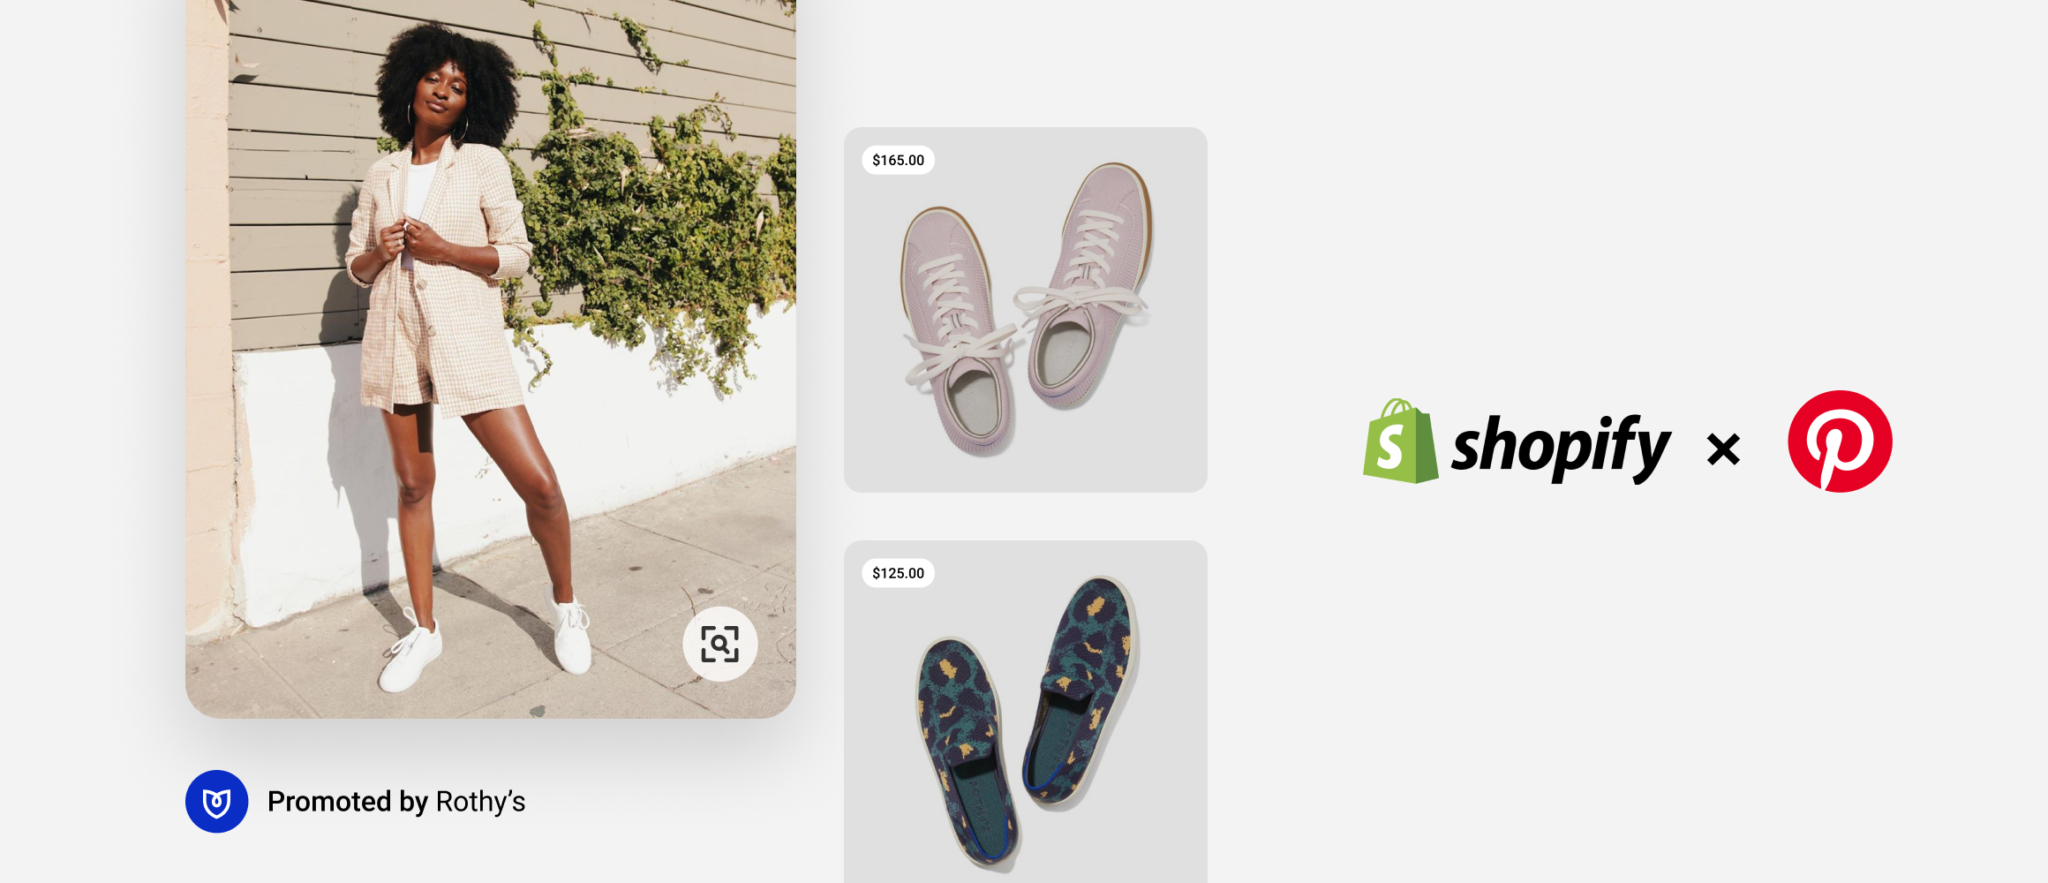 Pinterest Expands Partnership with Shopify